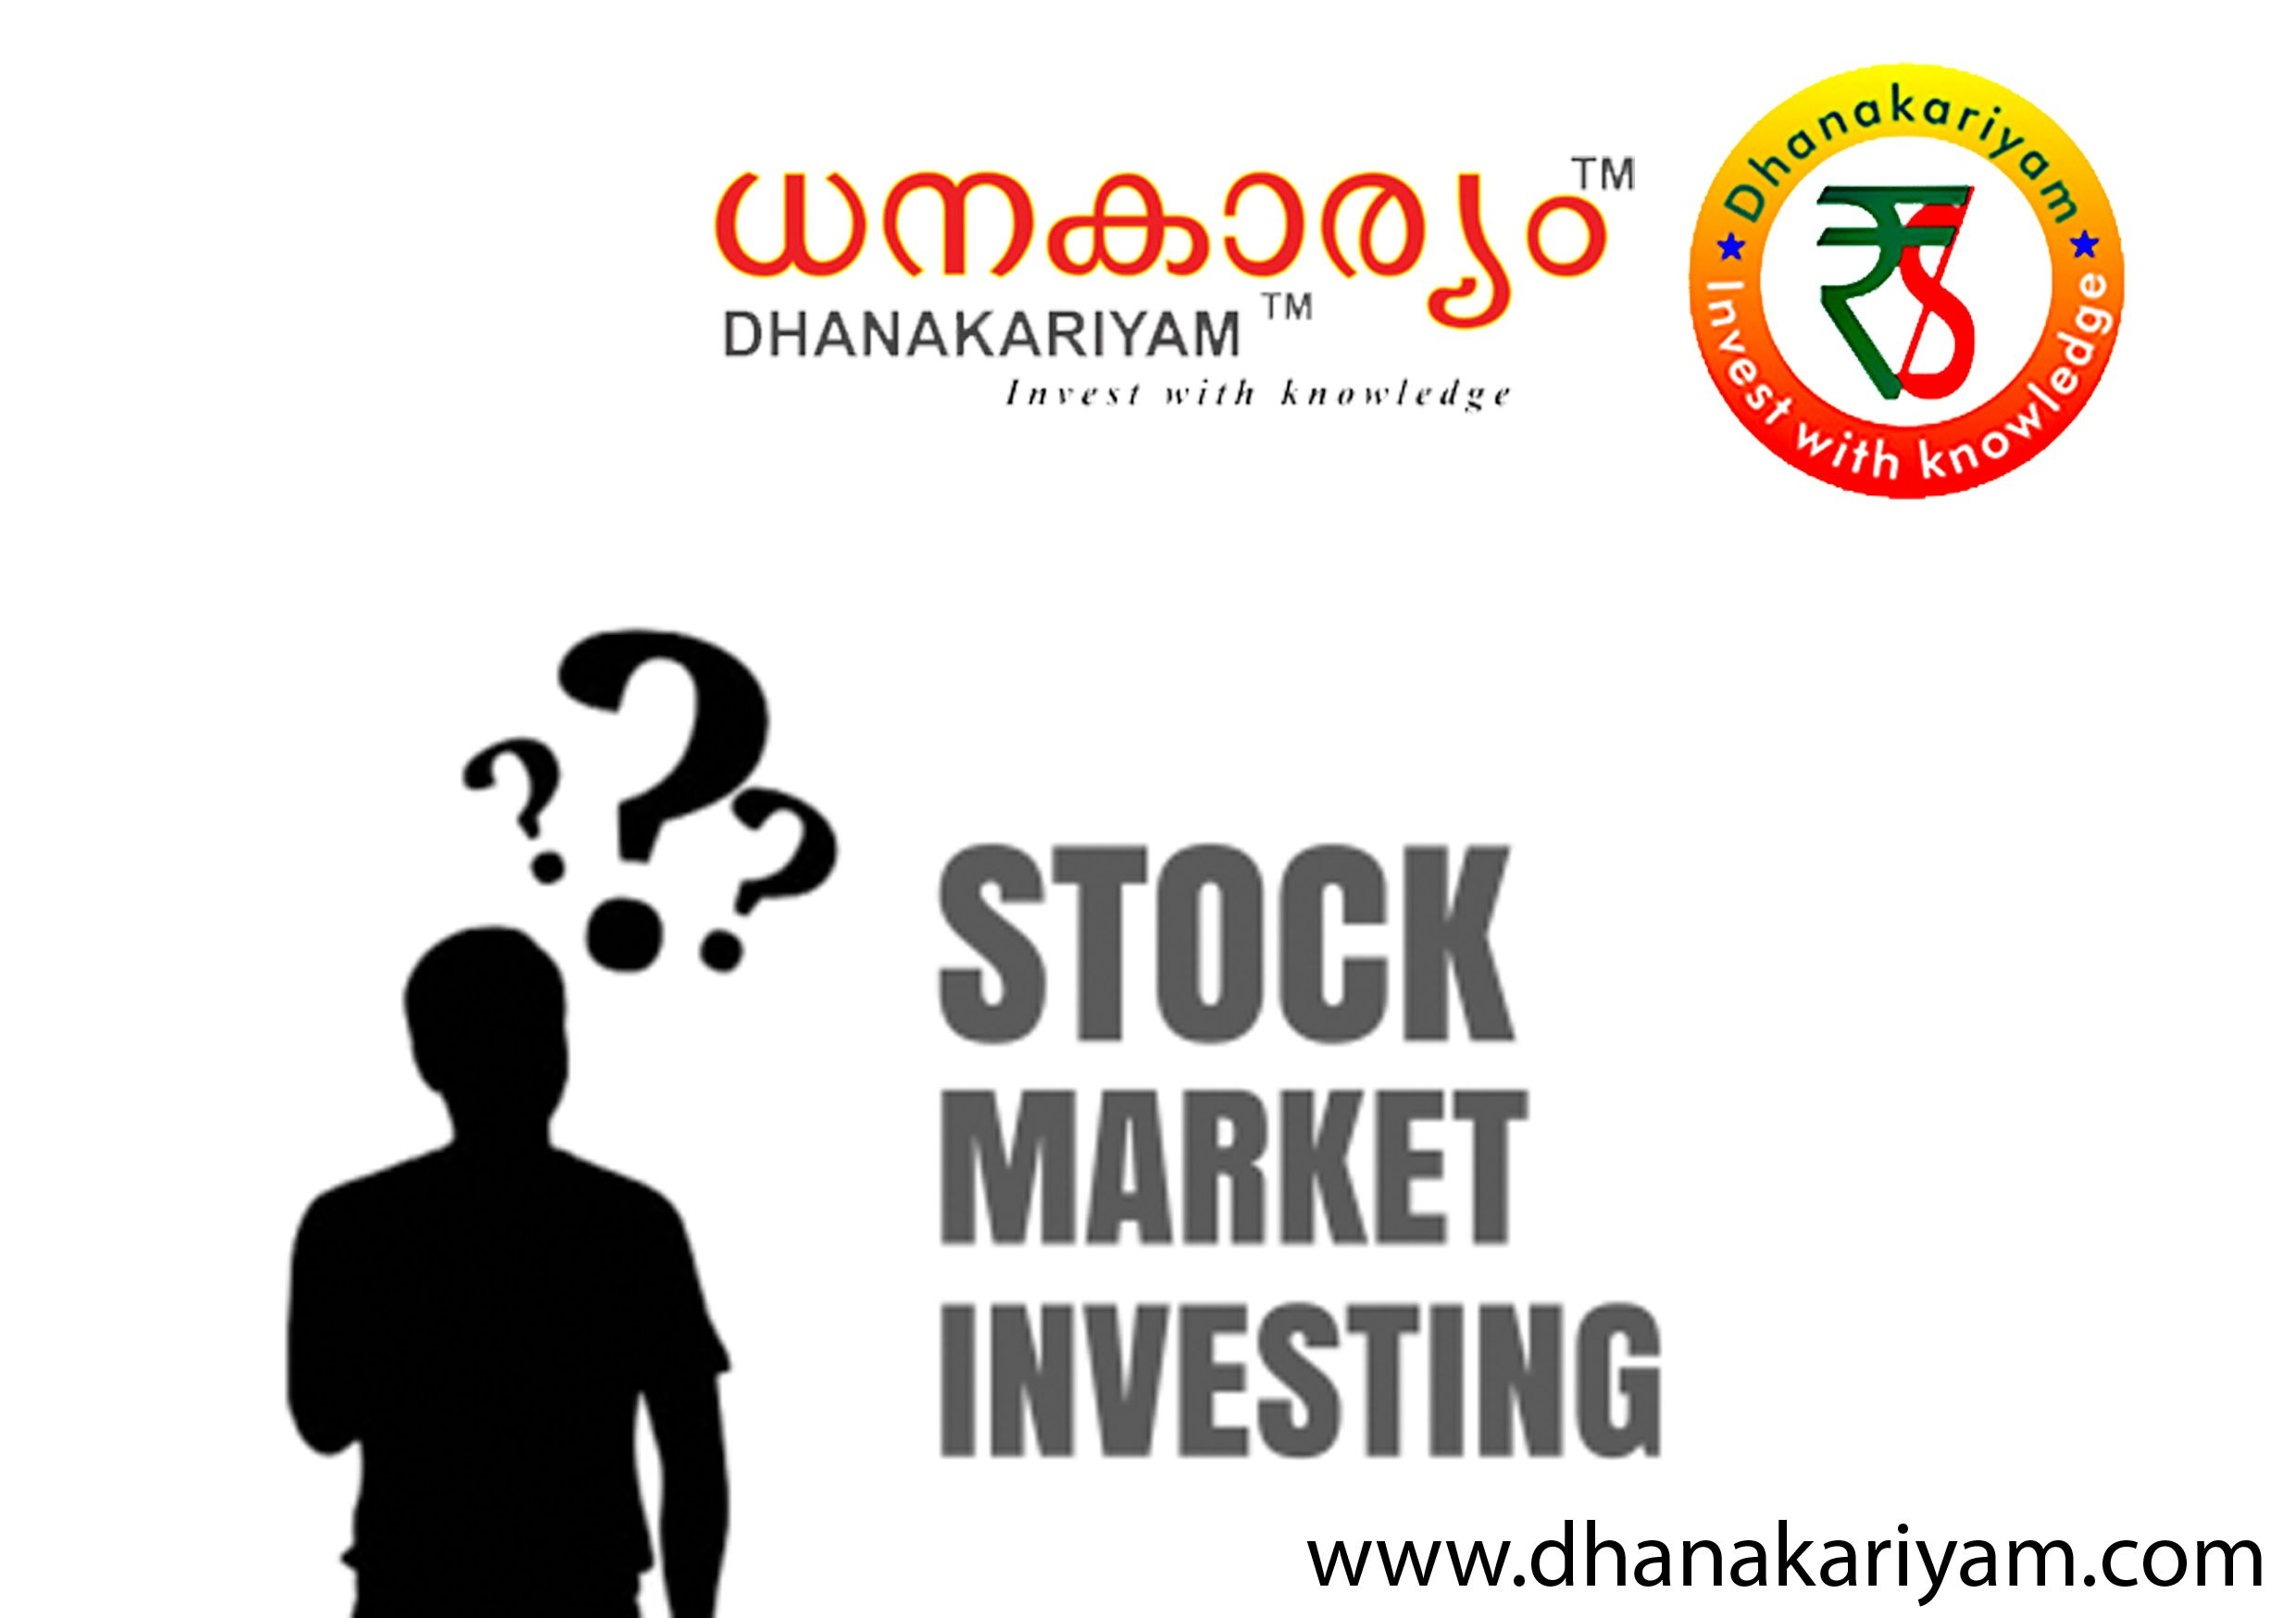 for more details please contact Stock market, Stock